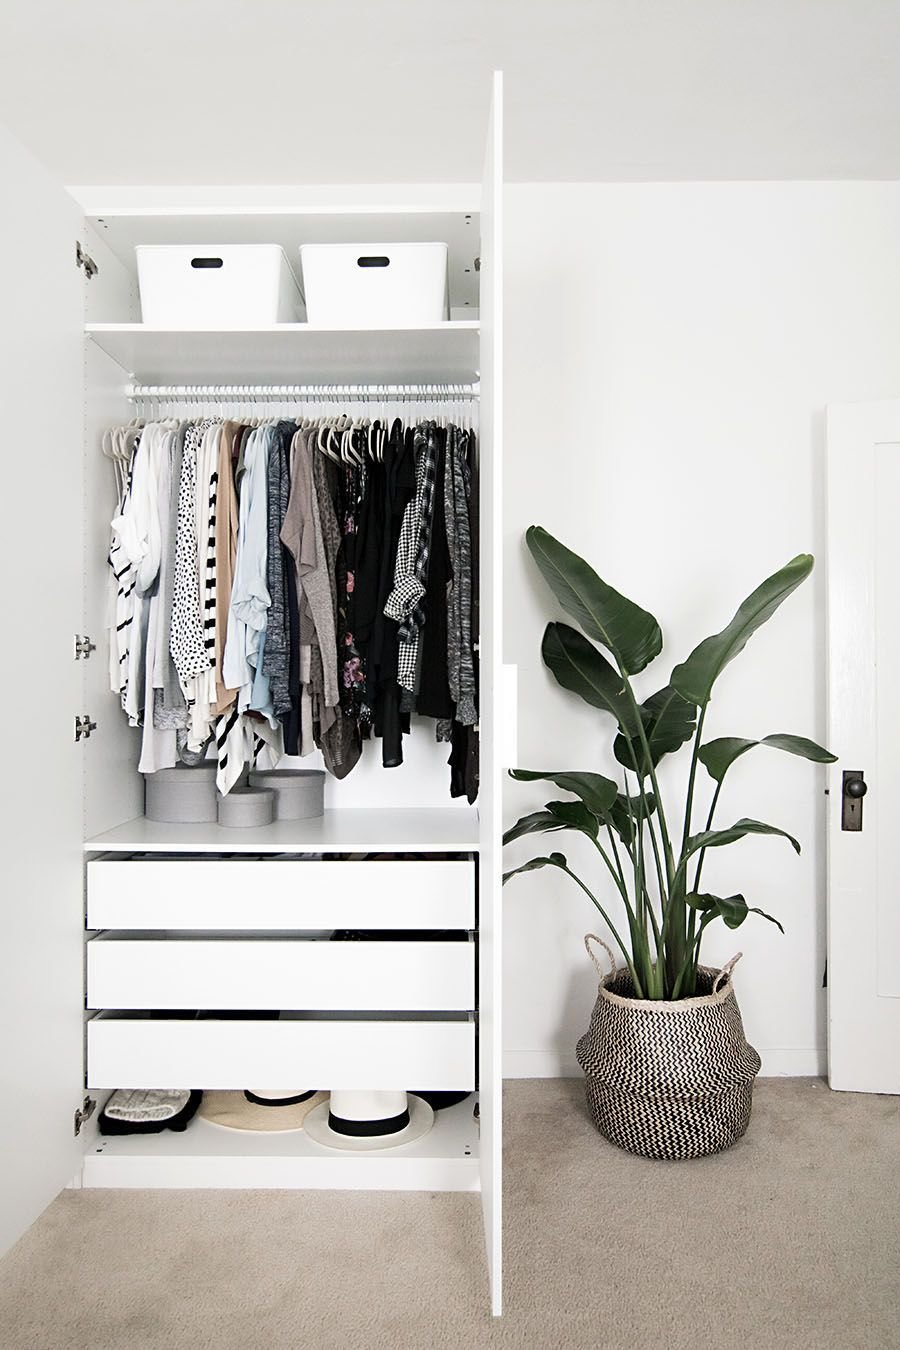 Best Hideaway Storage Ideas For Small Spaces Minimalist With Pictures